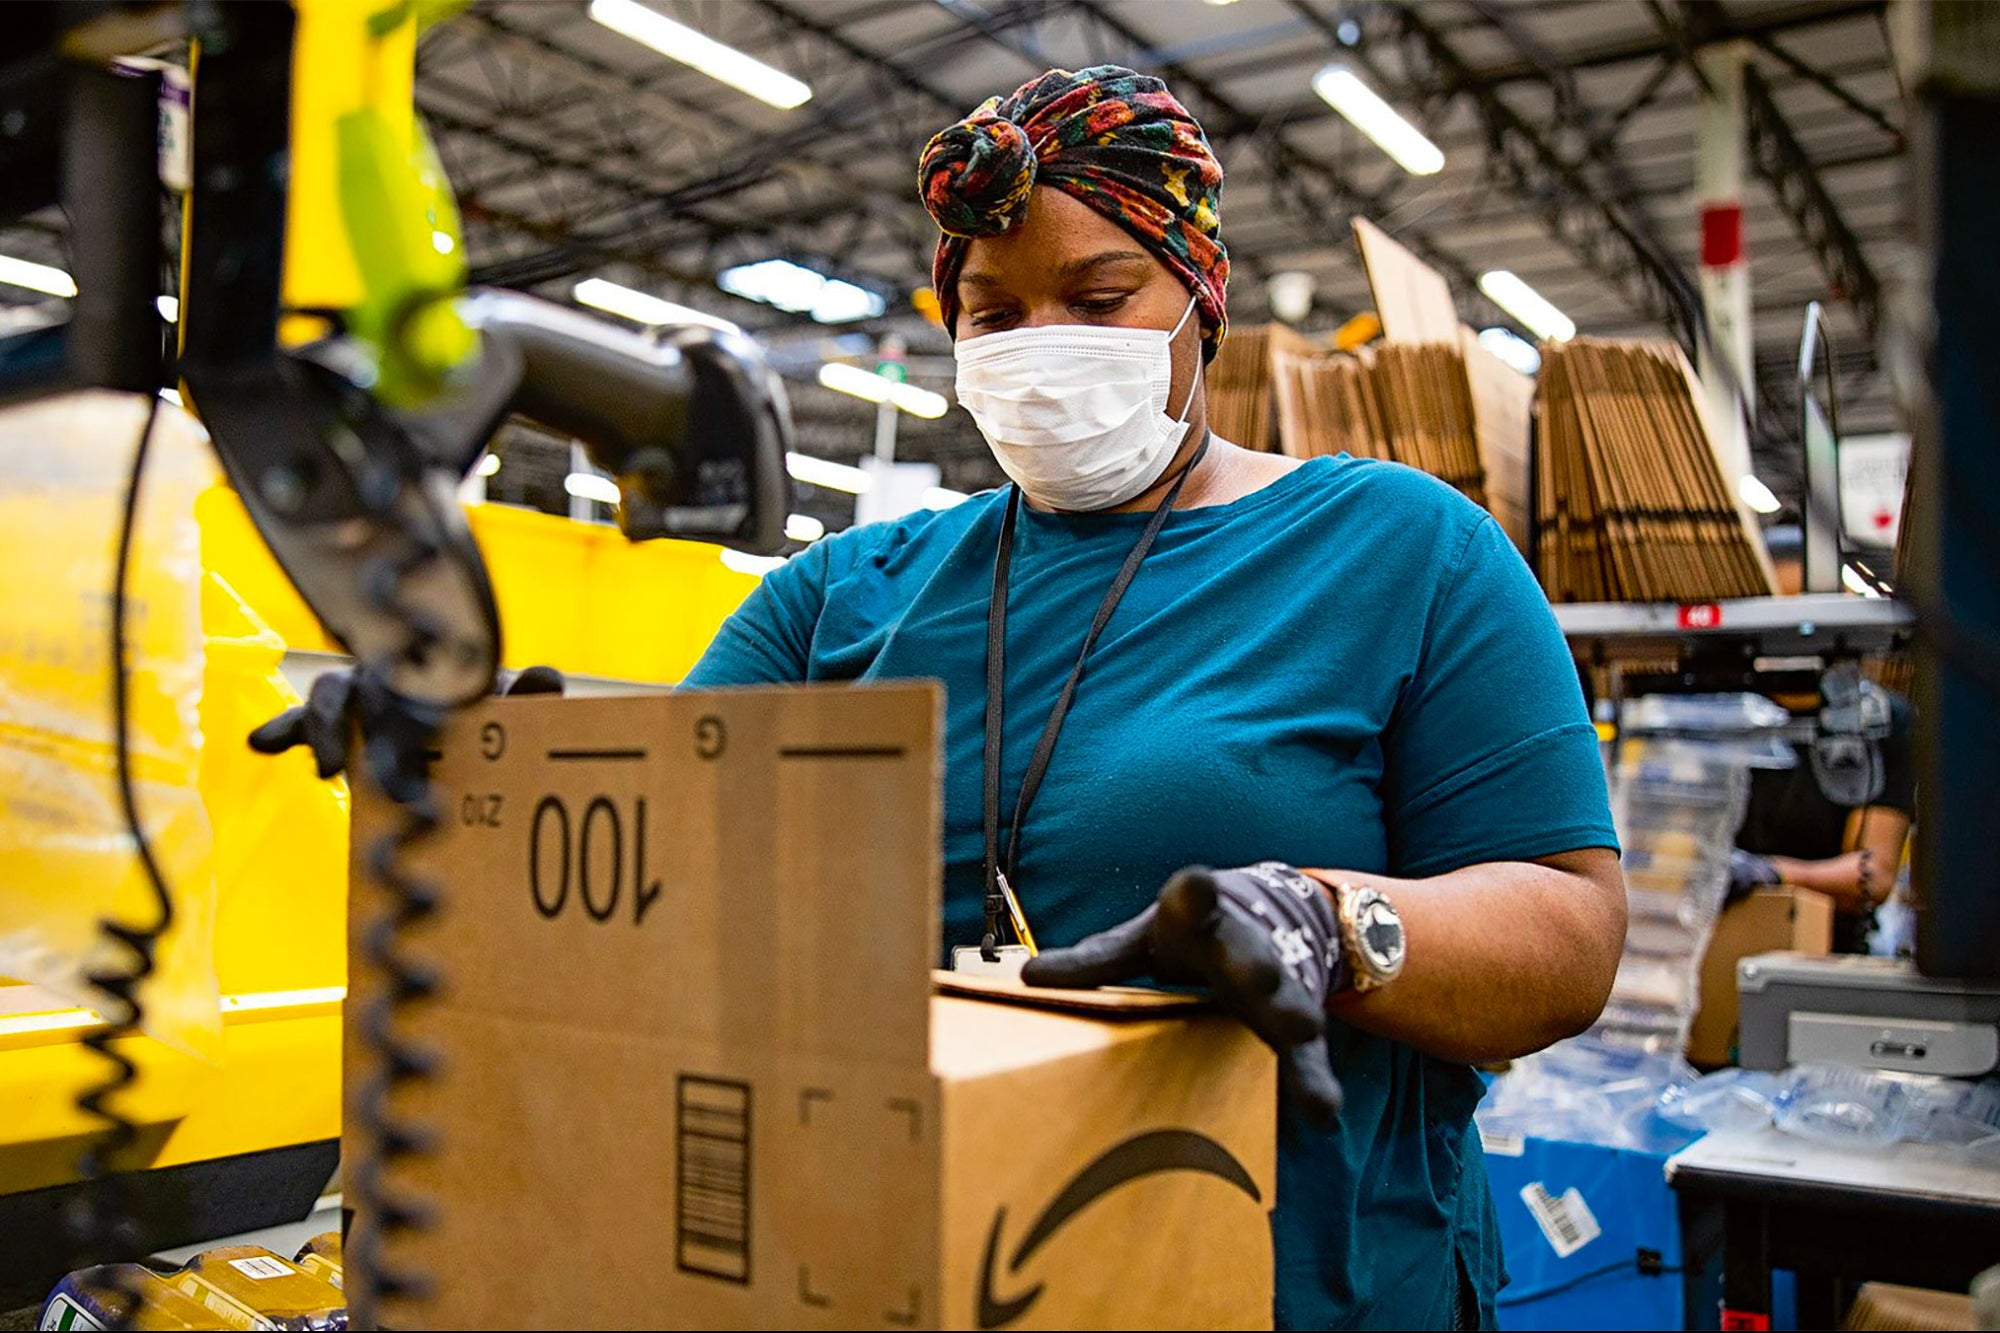 Amazon: Nearly 20,000 Employees Caught Covid-19 Out of 1.3 Million Workforce